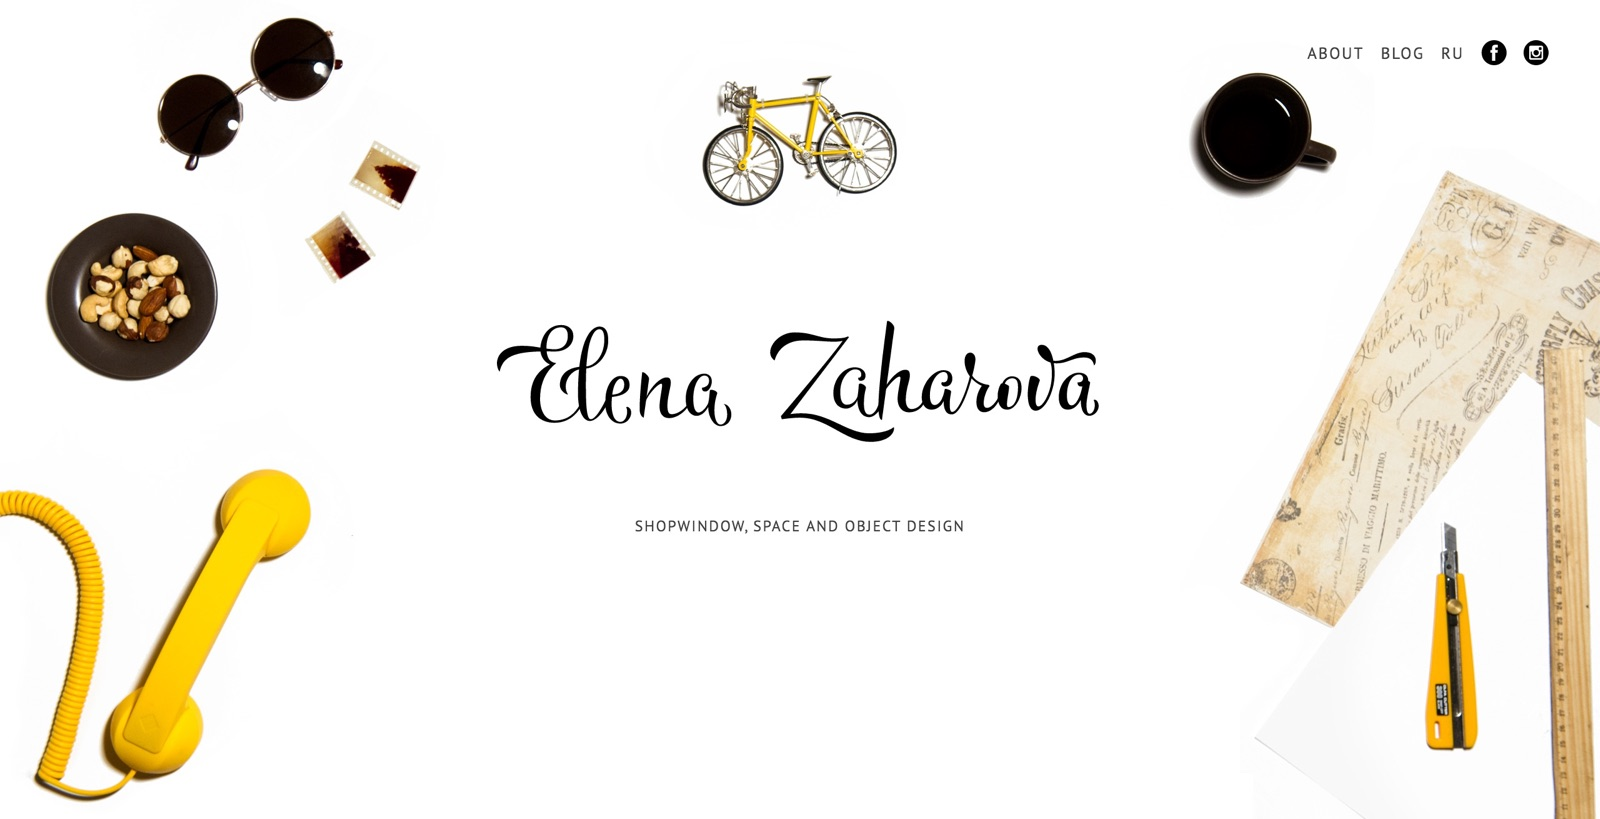 Elena Zaharova's table with sunglasses, toy bicycle, tea cup, photo negatives and sketches